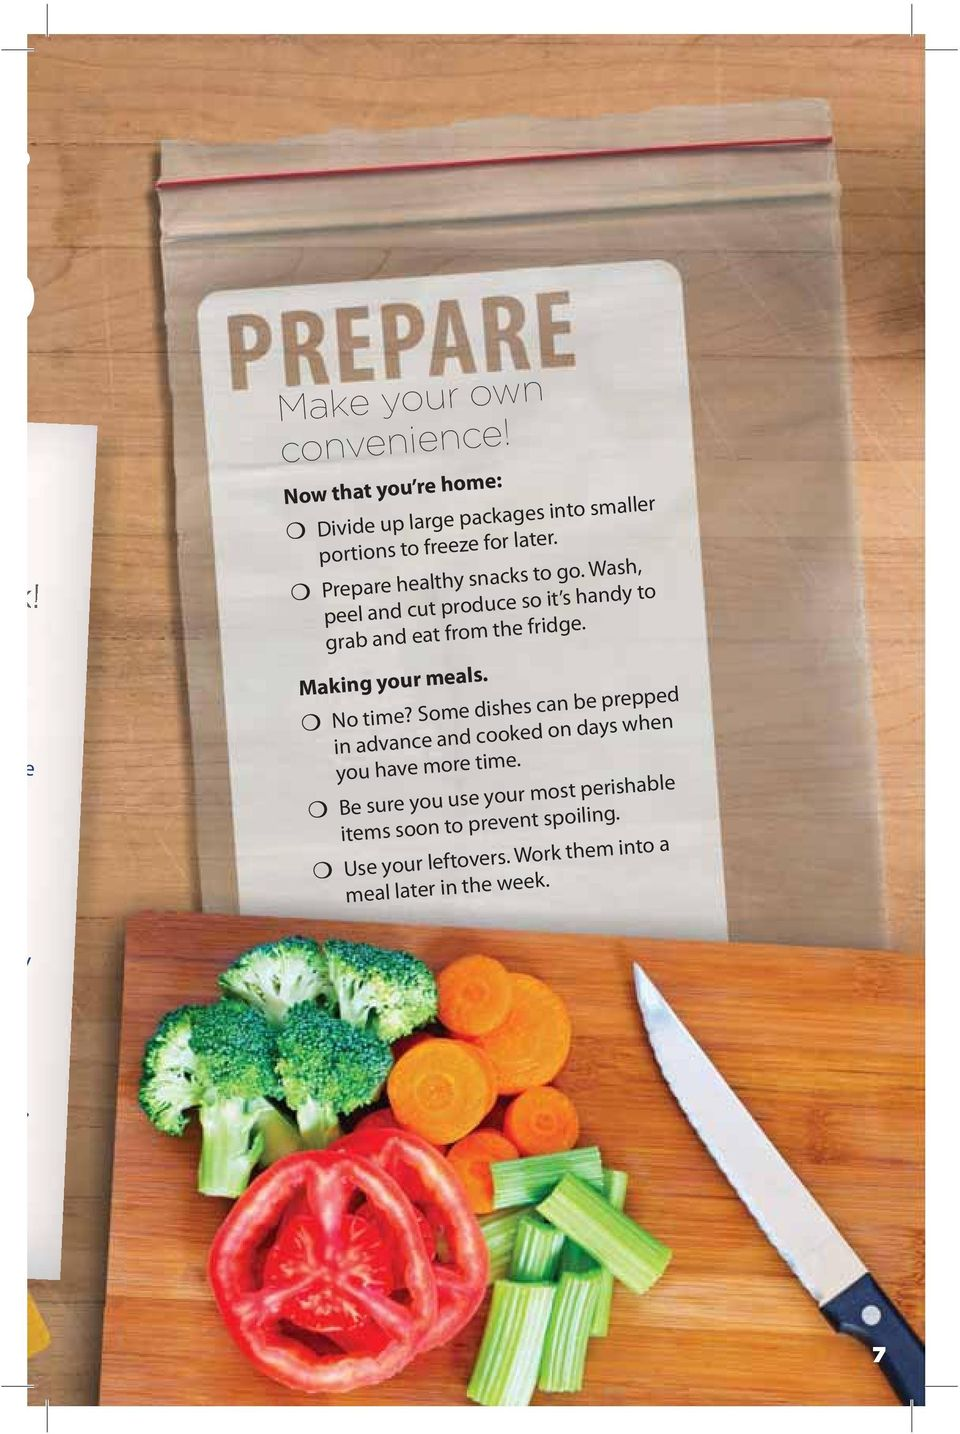 Prepare healthy snacks to go. Wash, peel and cut produce so it s handy to grab and eat from the fridge.